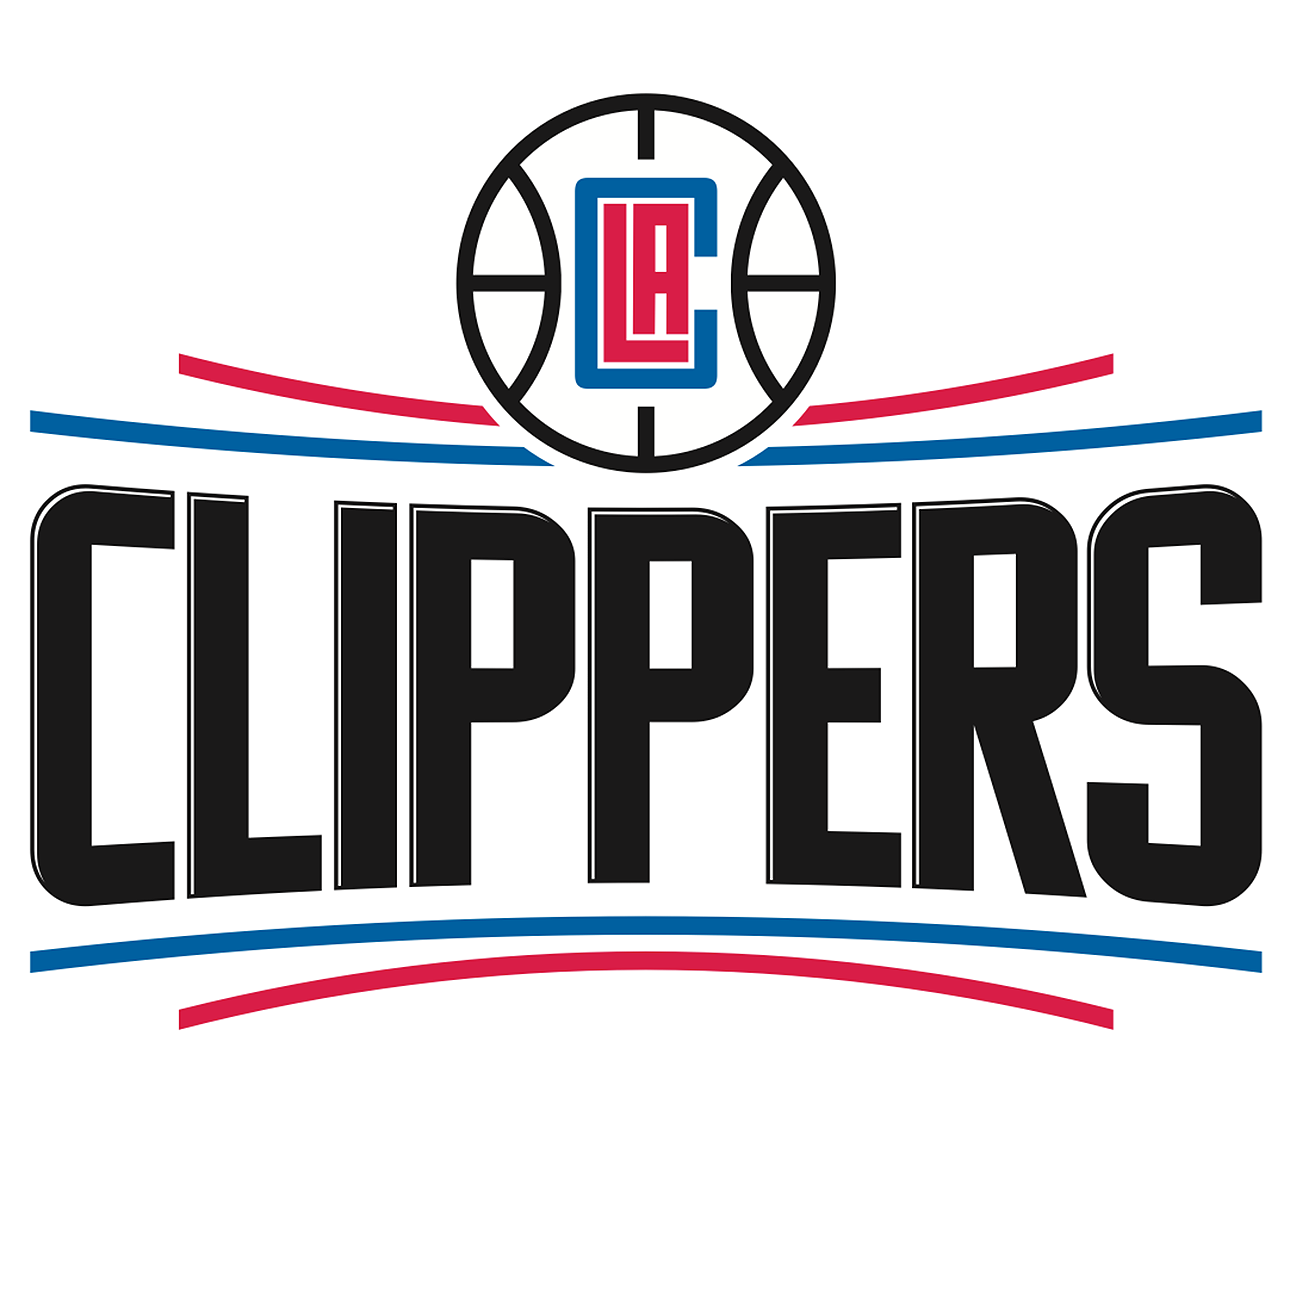 lukas: dissecting the los angeles clippers' new uniforms